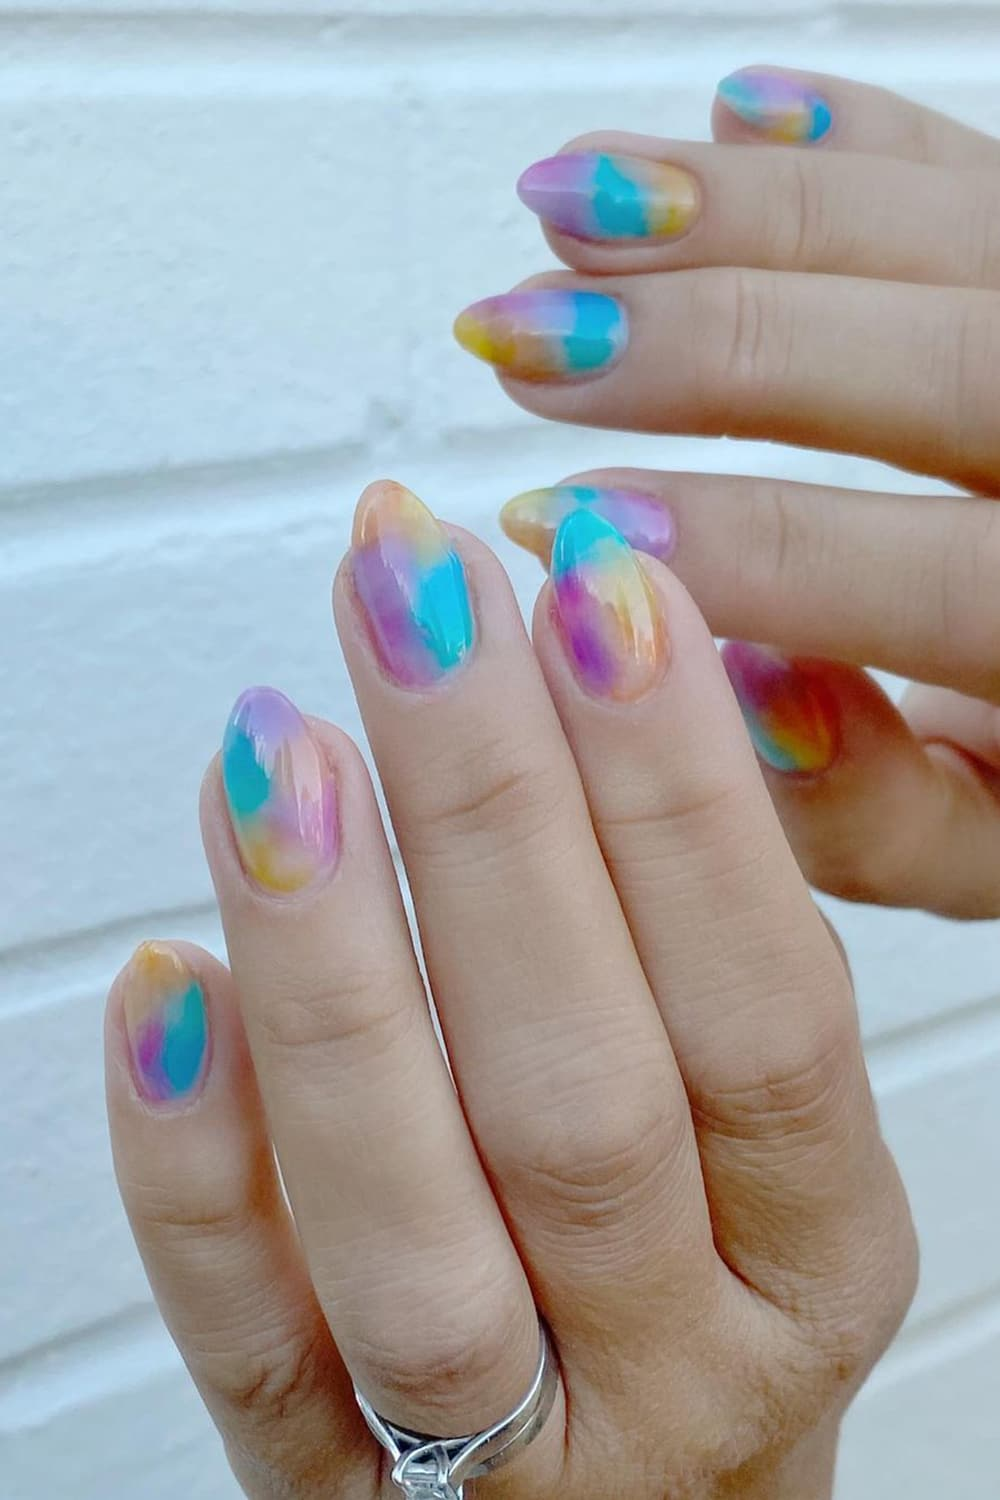 Colorful jelly nails